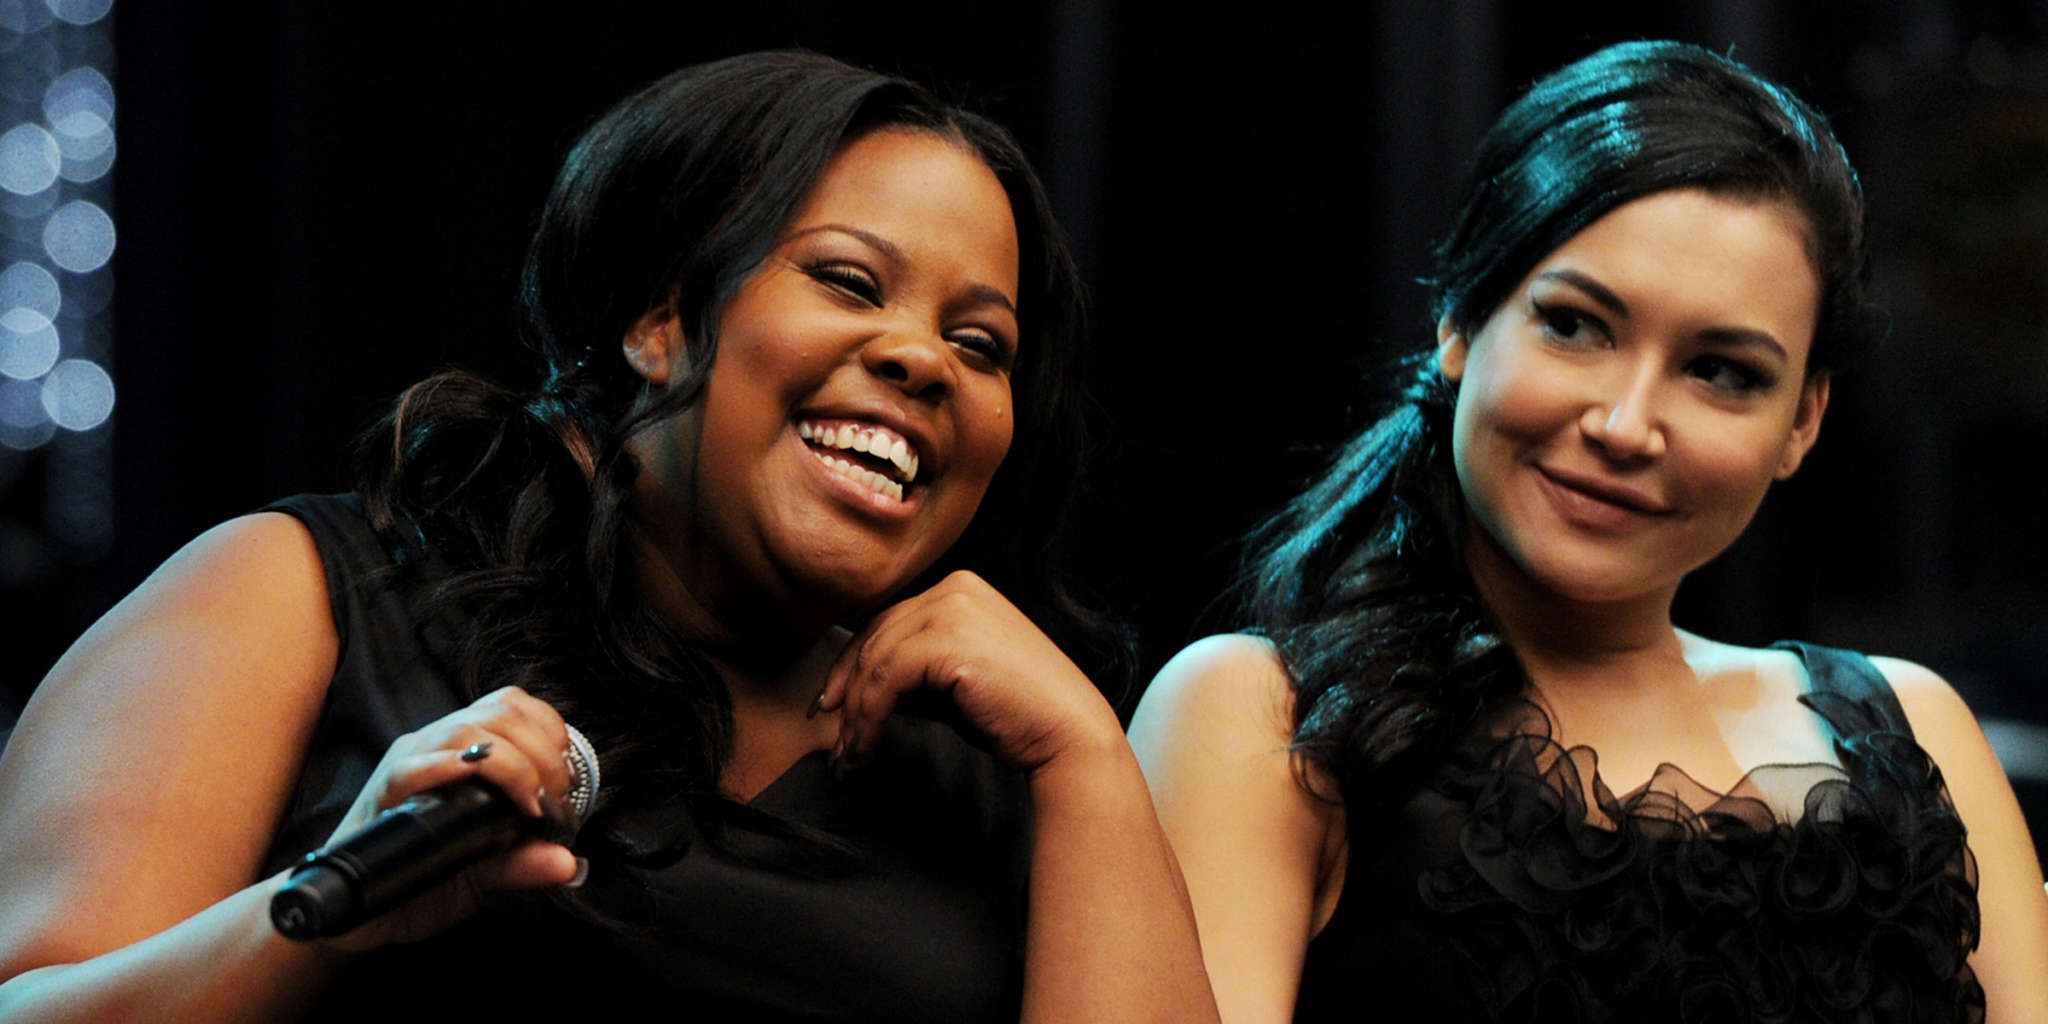 amber-riley-pays-a-touching-tribute-to-late-glee-co-star-naya-rivera-with-this-amazing-performance